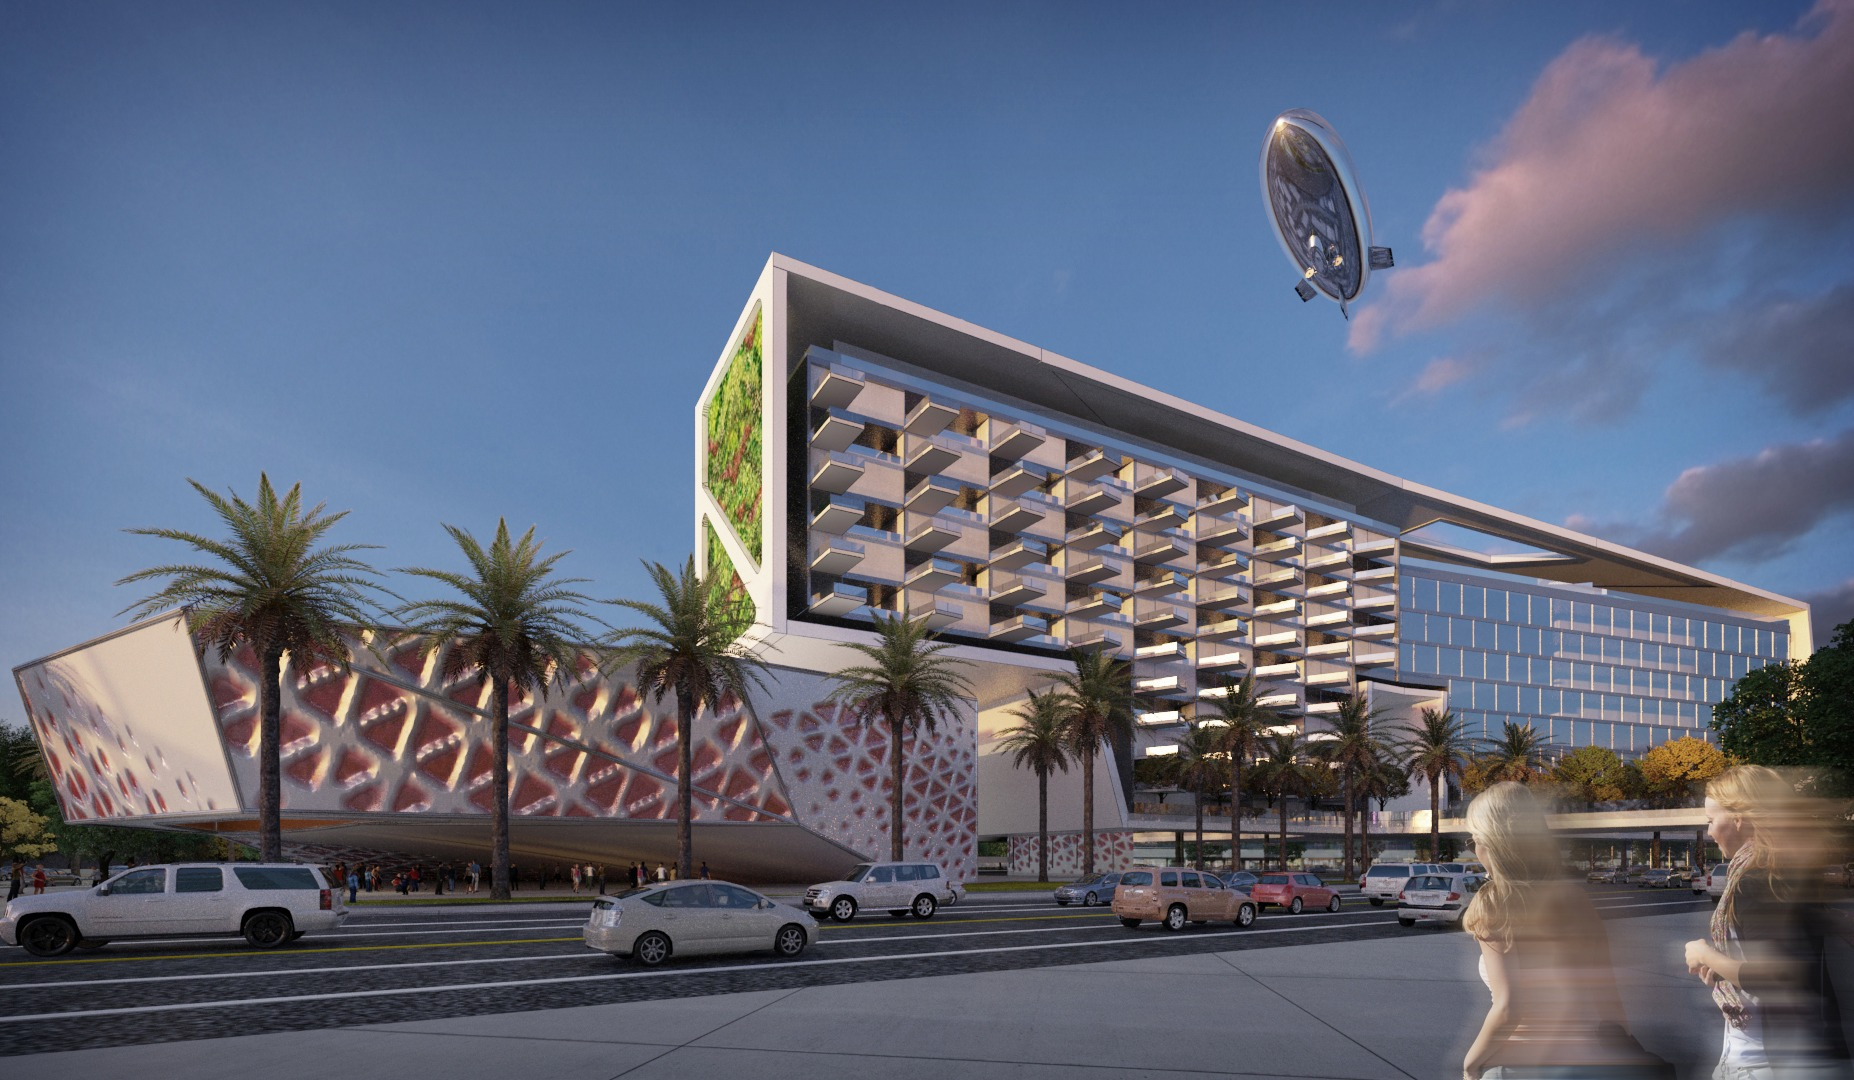 Mixed Use Hotel complex